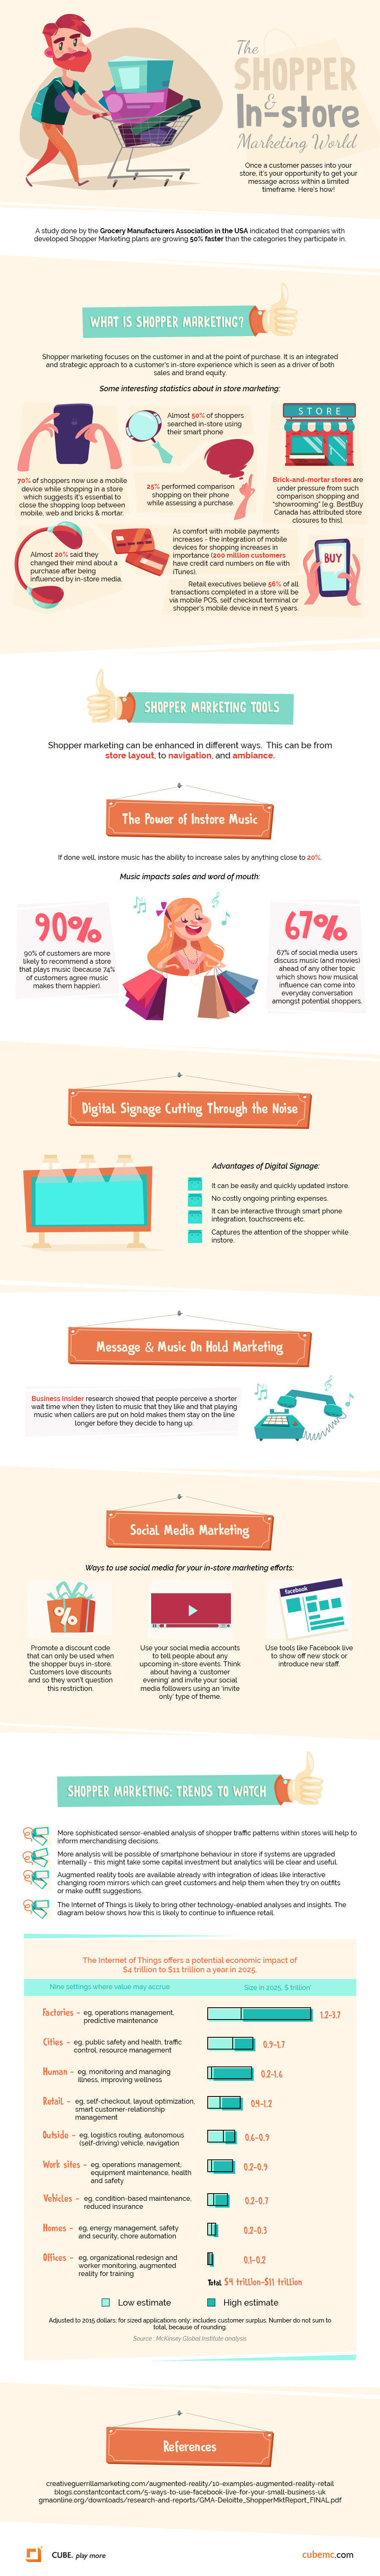 Shopper marketing infographic